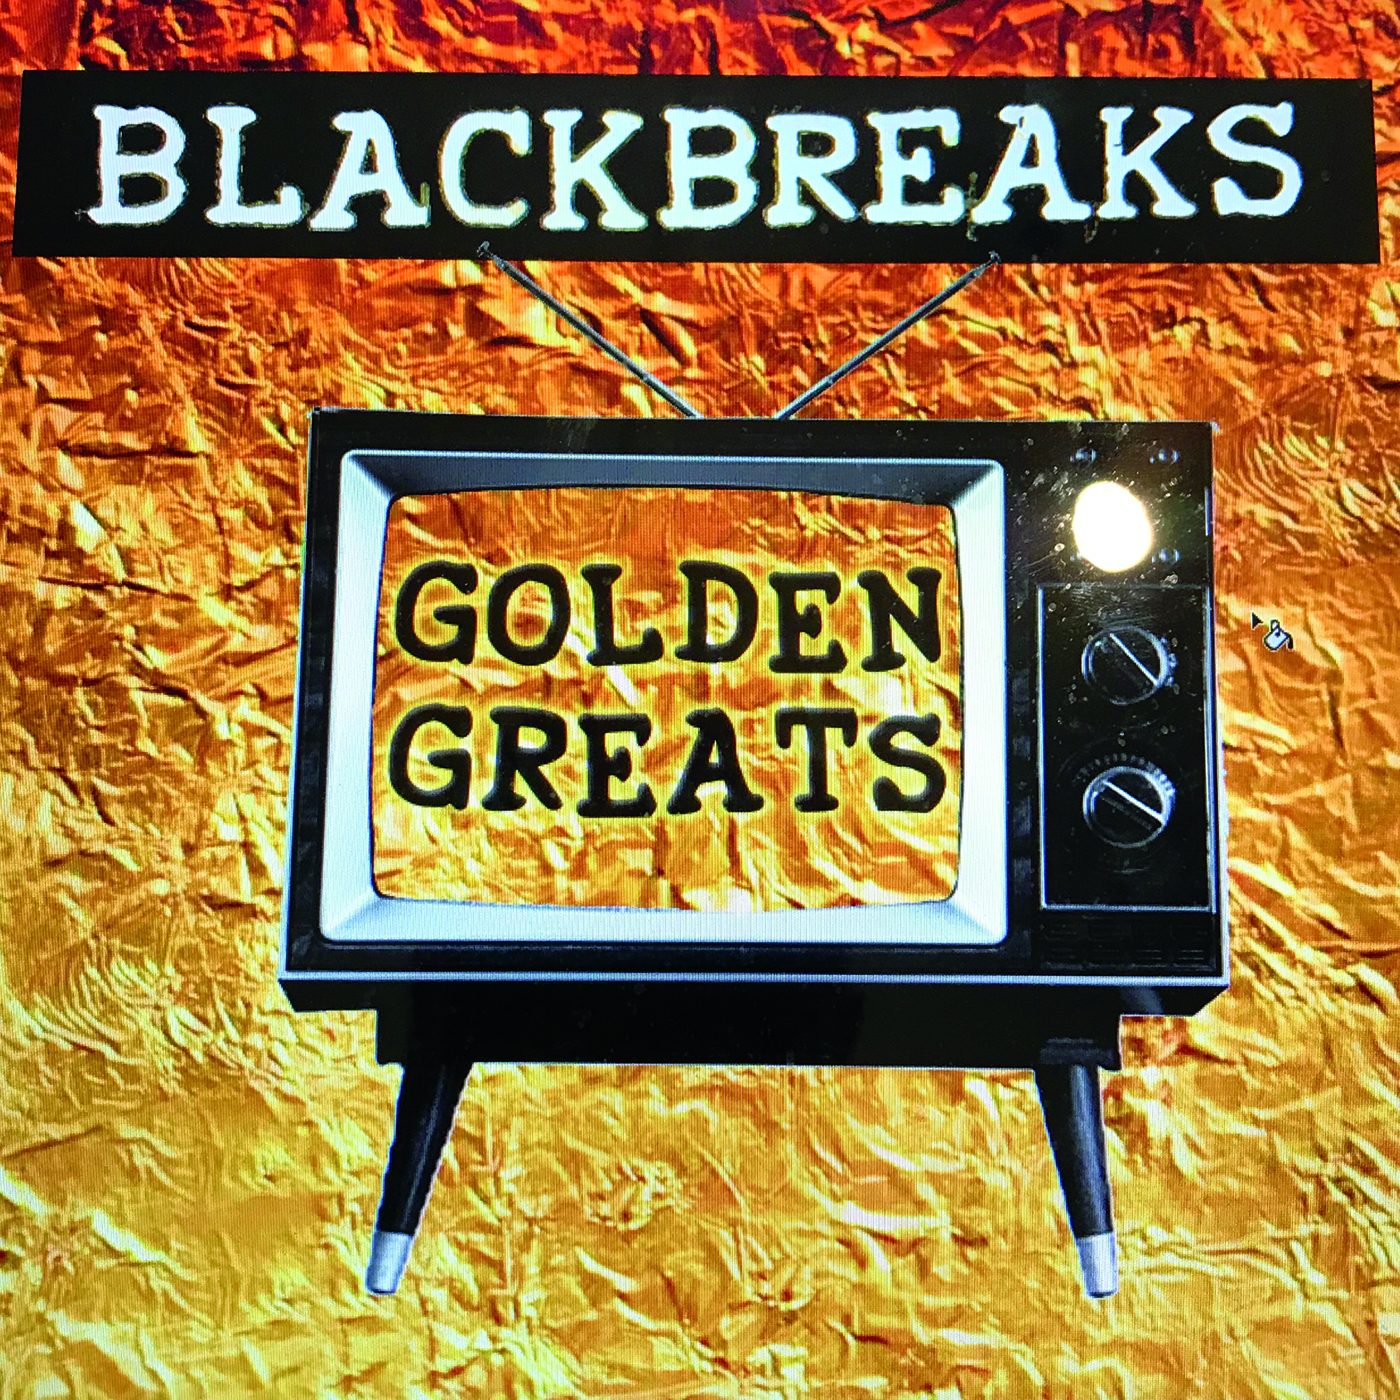 Blackbreaks Golden Greats - cover art